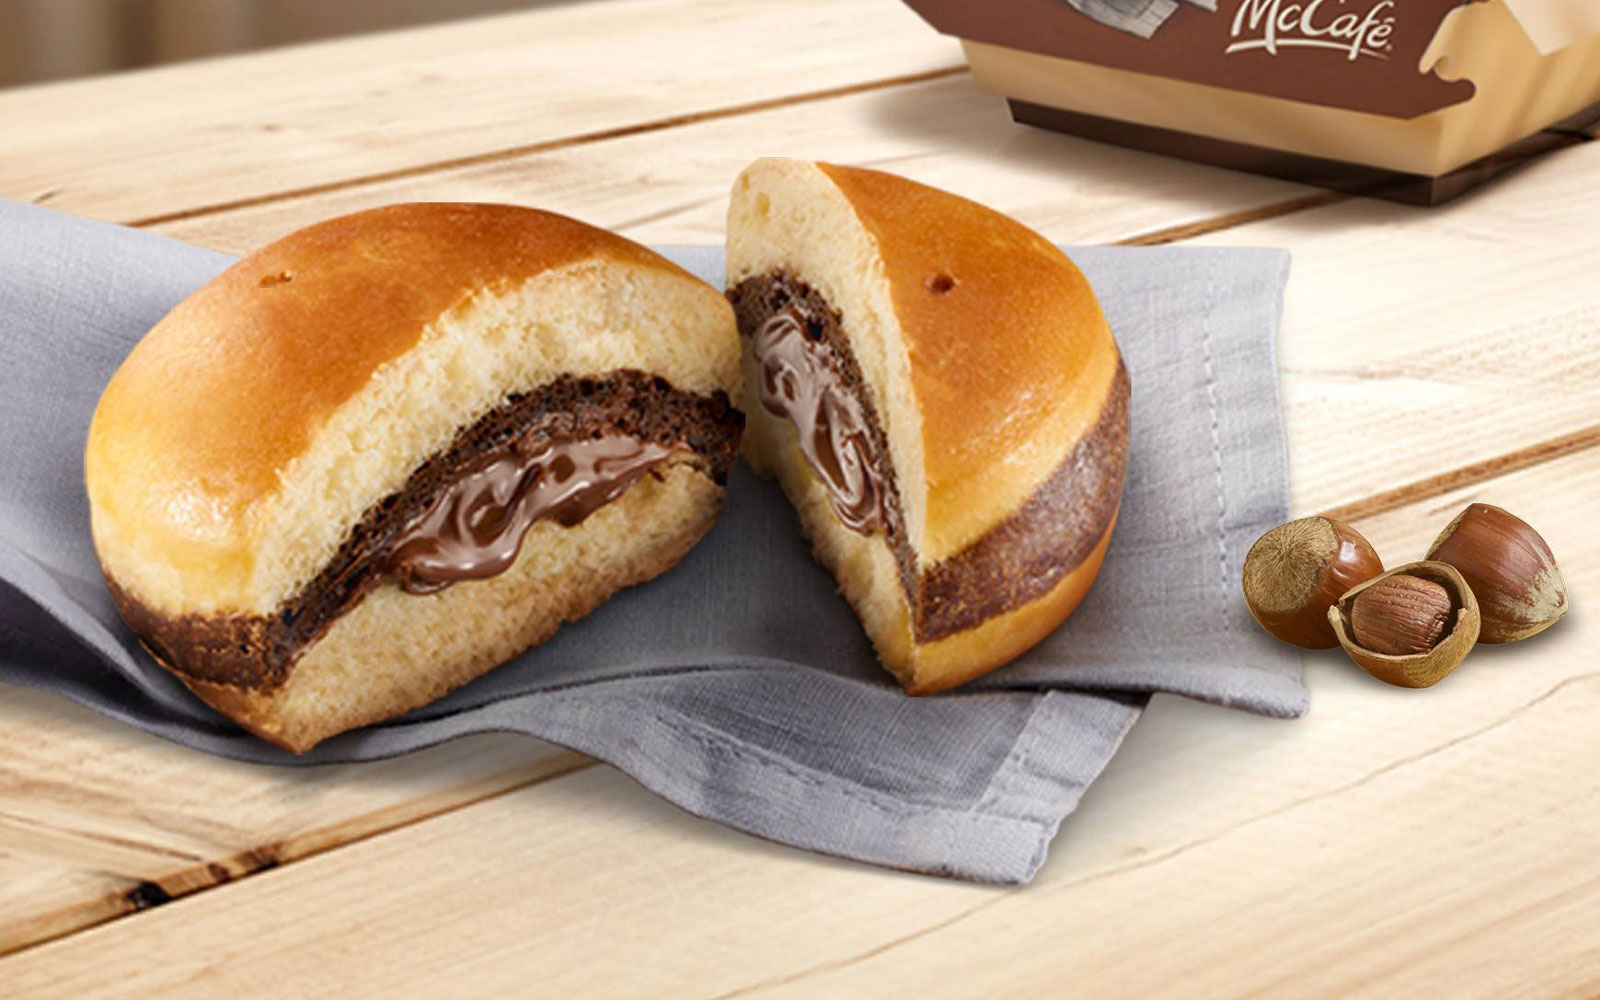 McDonald's Is Offering a Nutella Burger in Italy